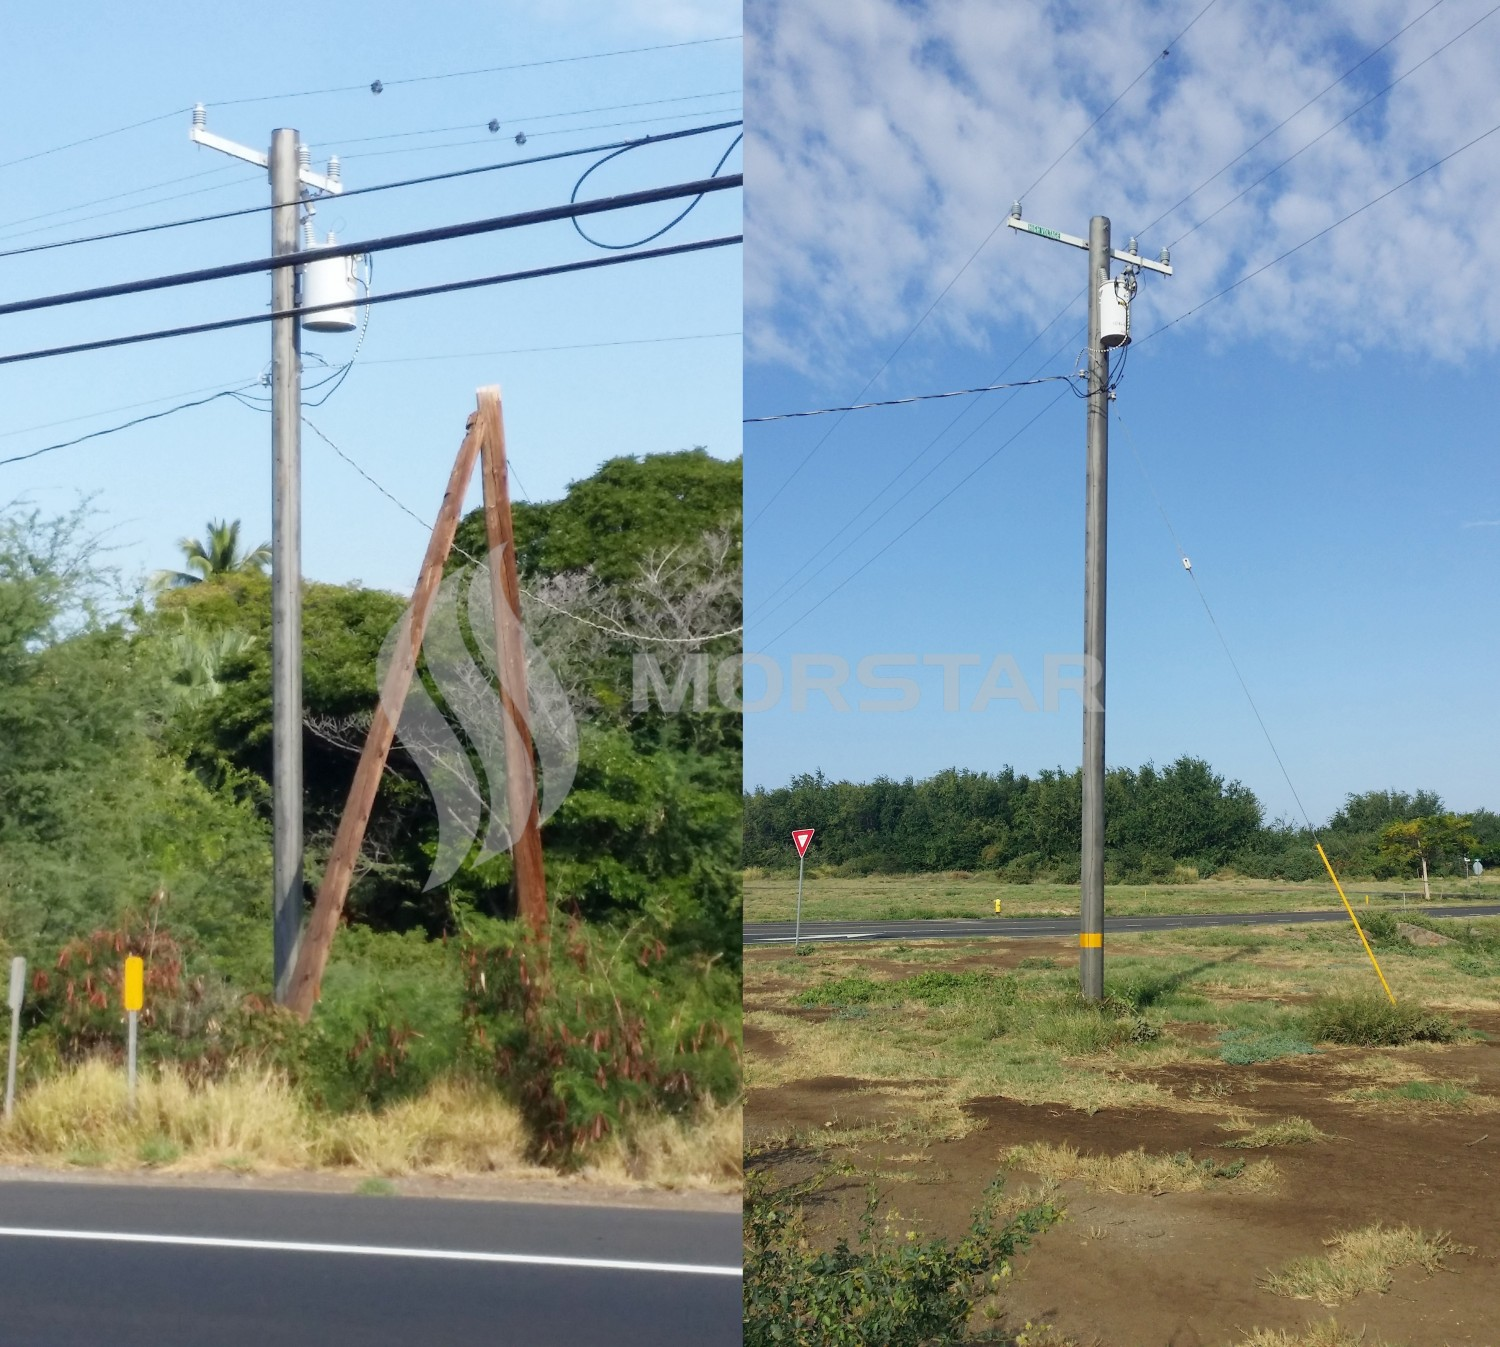 frp power pole1 1, FRP Pole composite, power pole composite, composite material, morstar